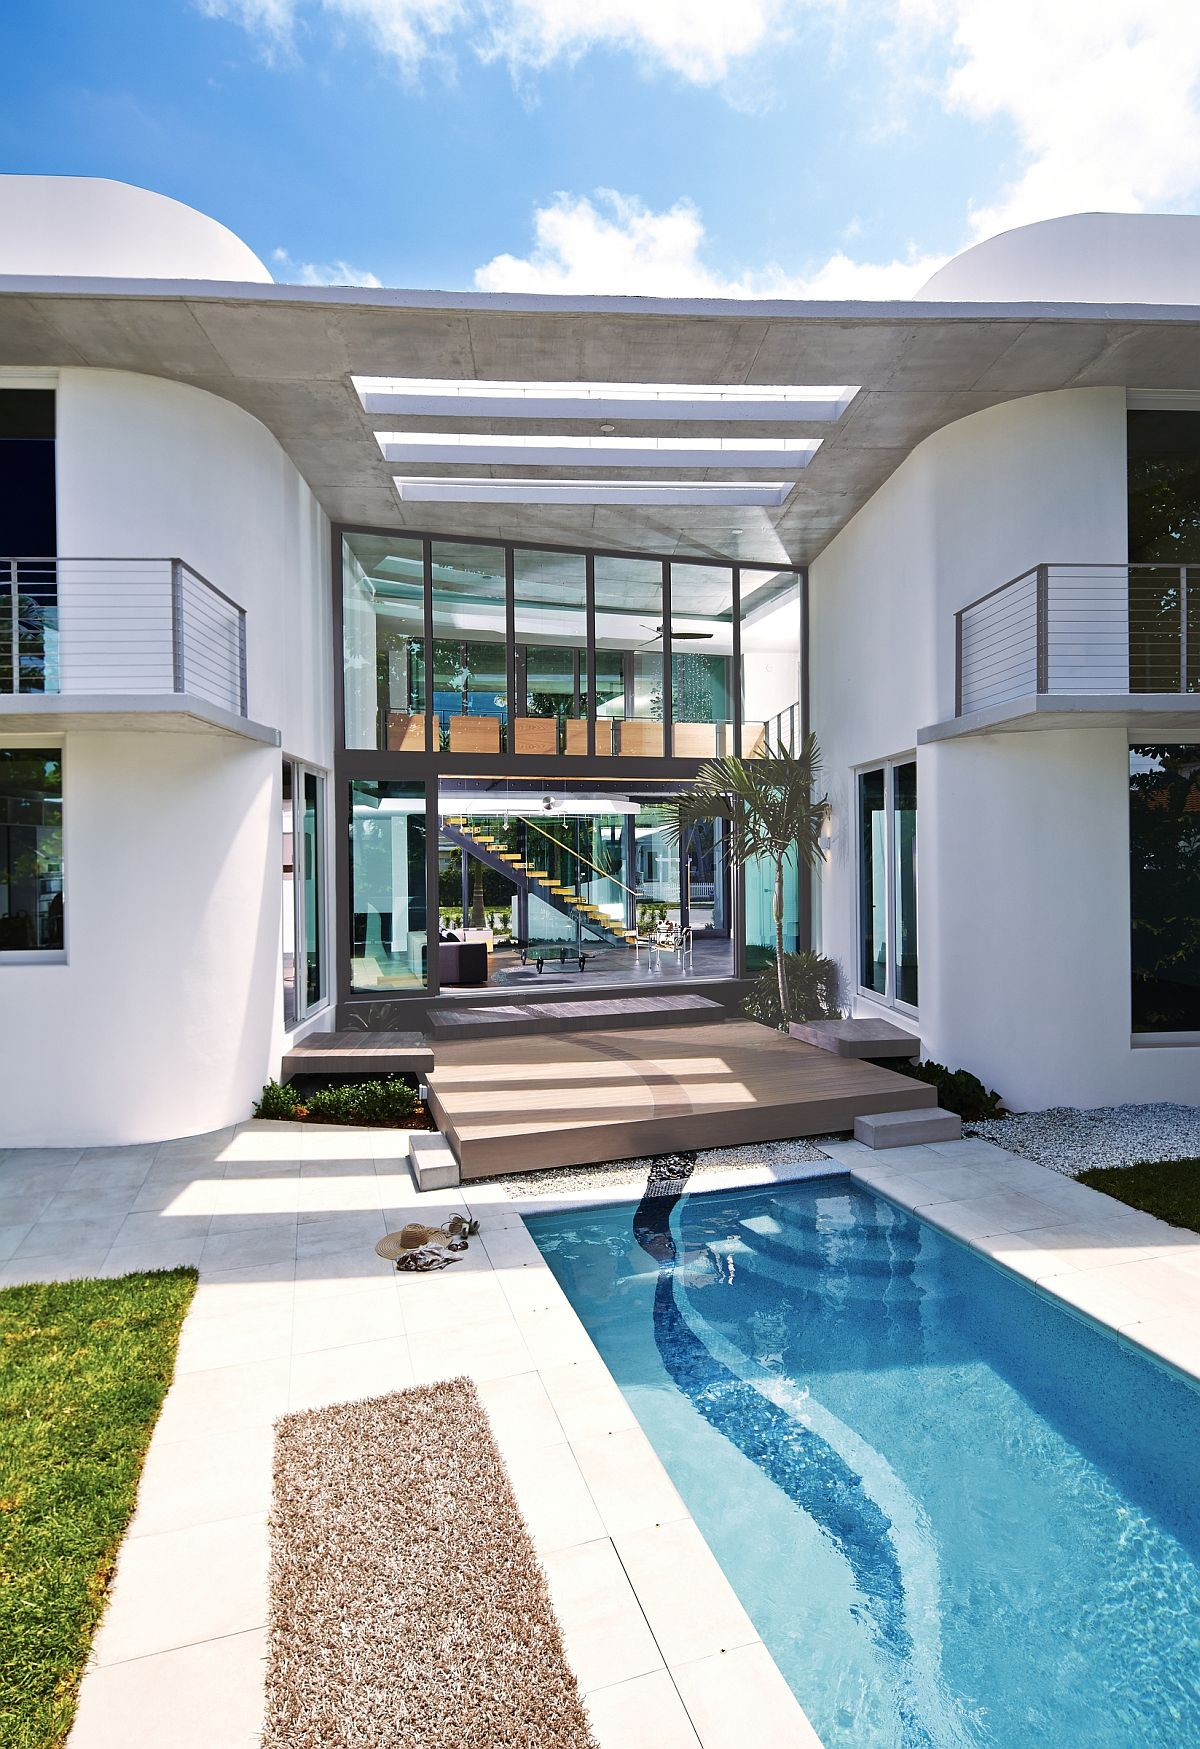 Miami's unique culture, MIMO style and heritage shape the contemporary residence with expansive backyard